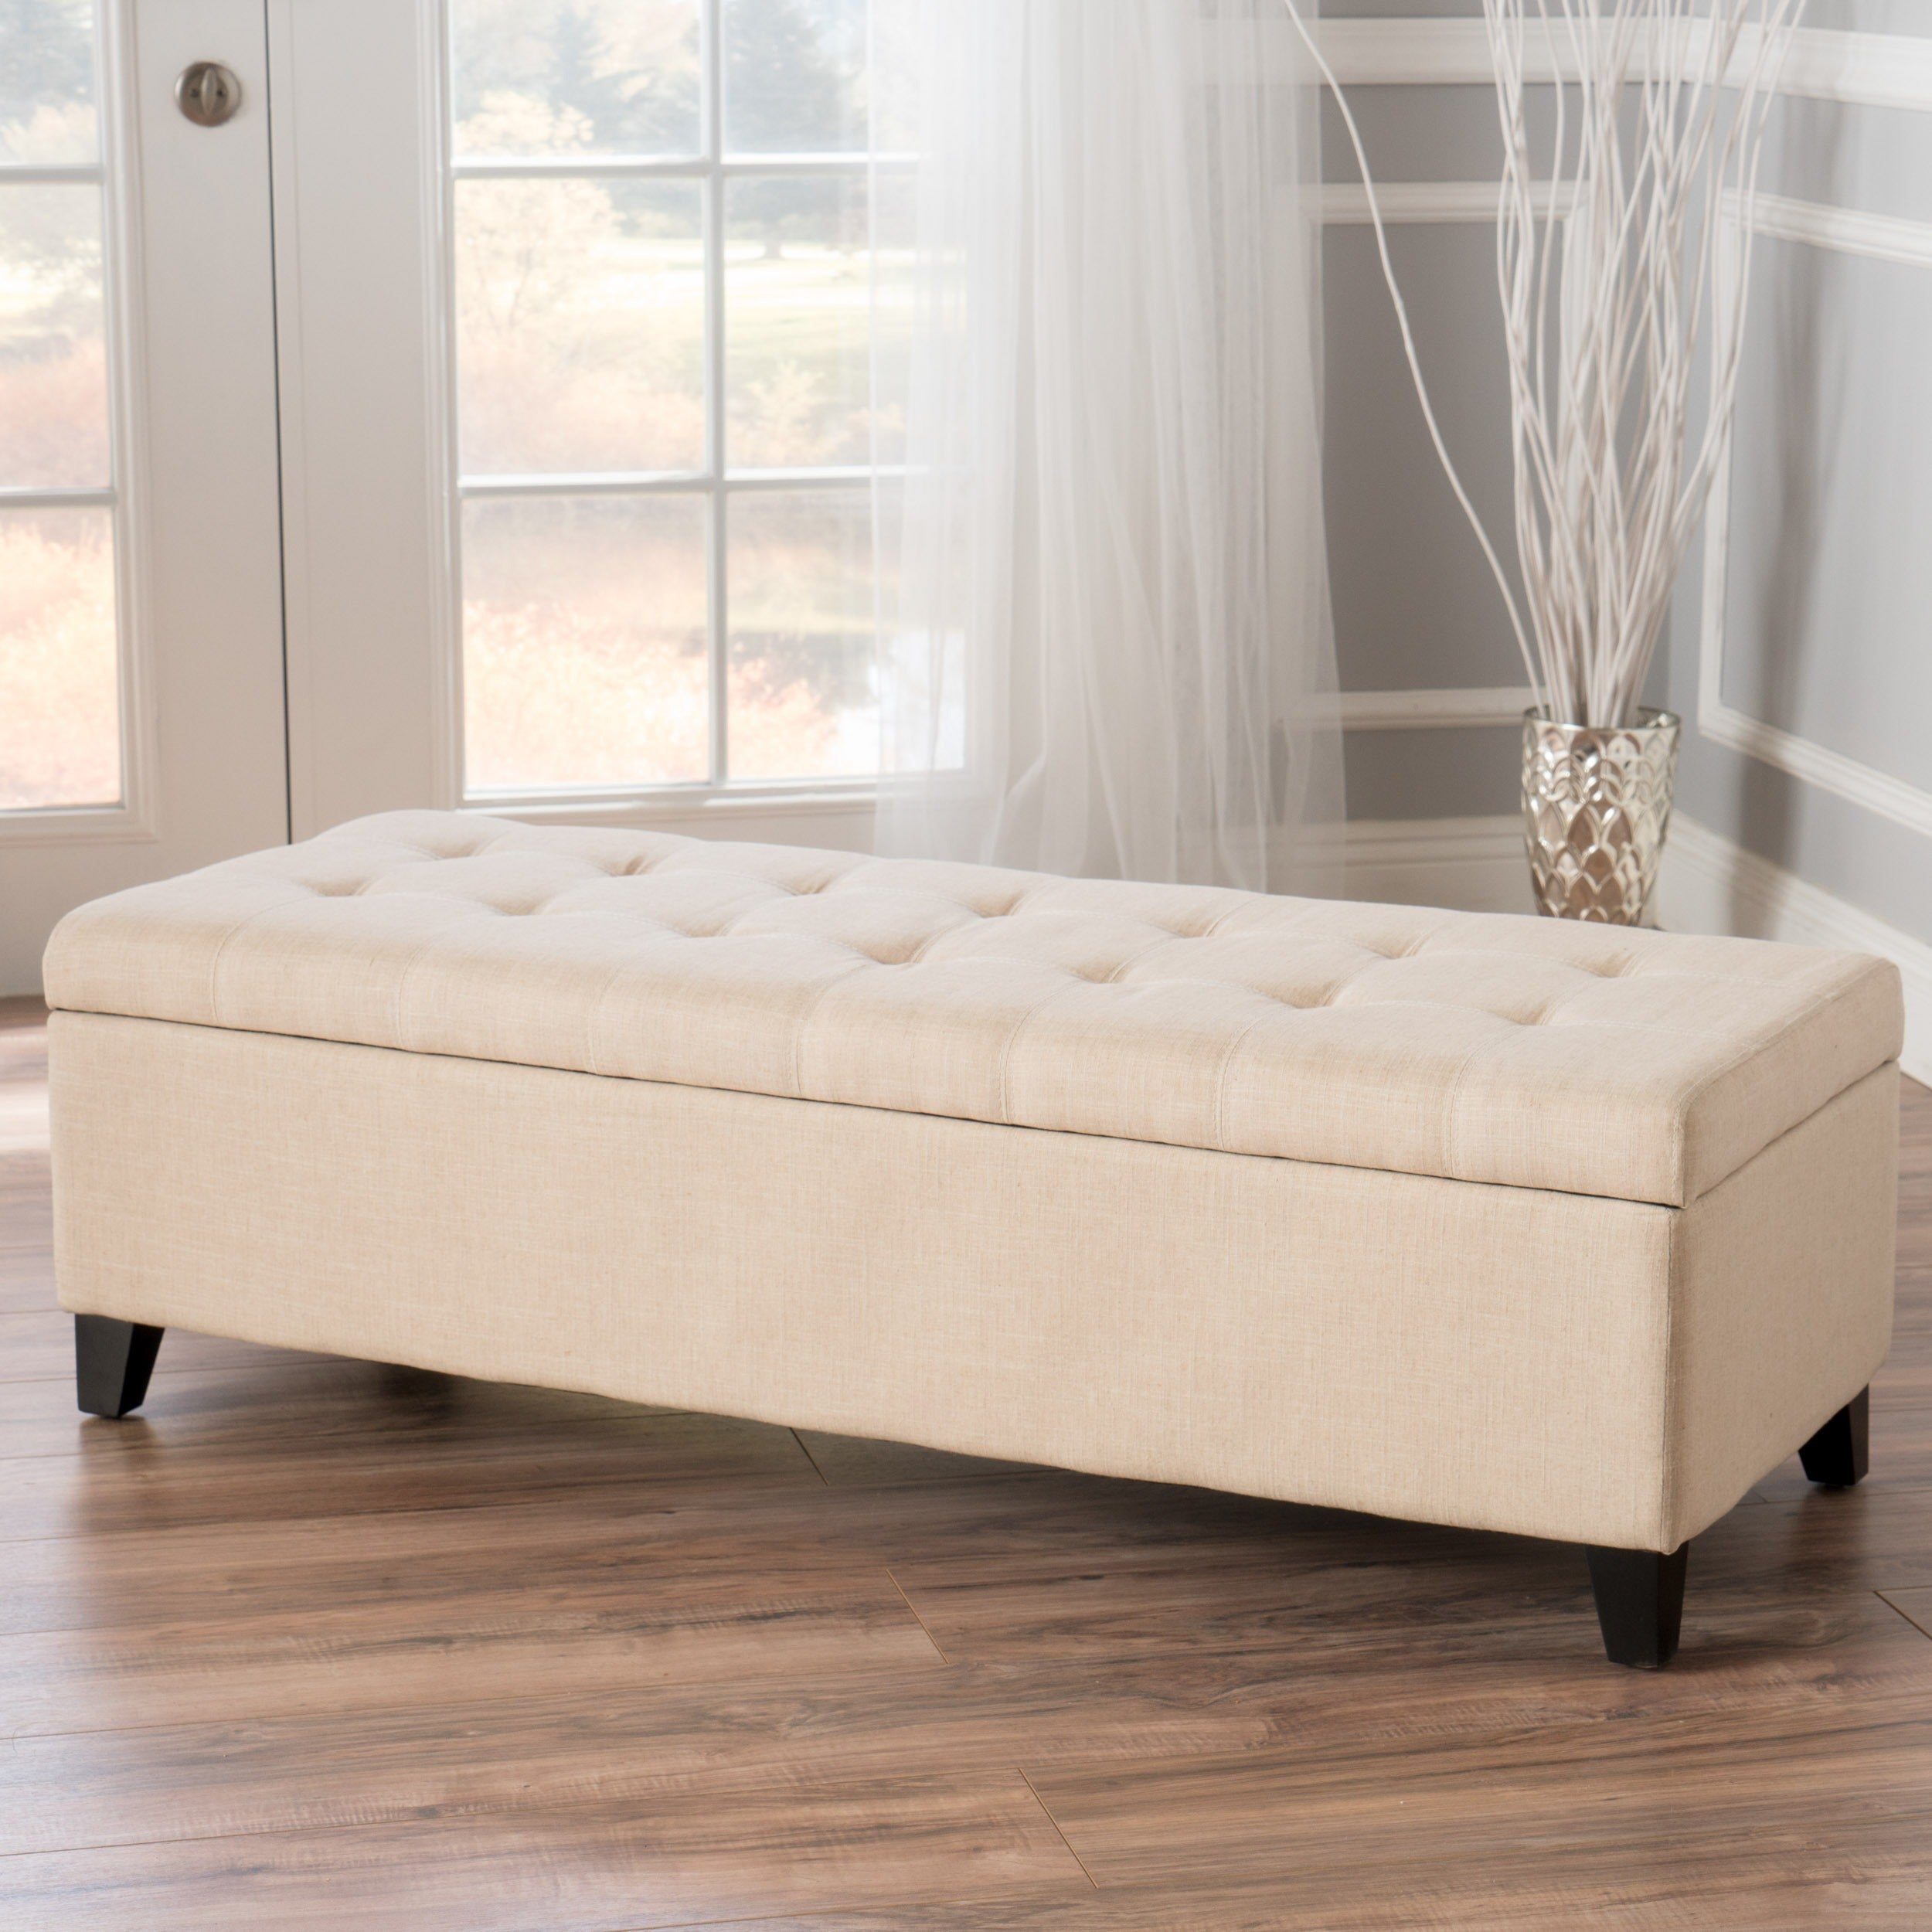 Buy benches settees online at overstock our best living room furniture deals